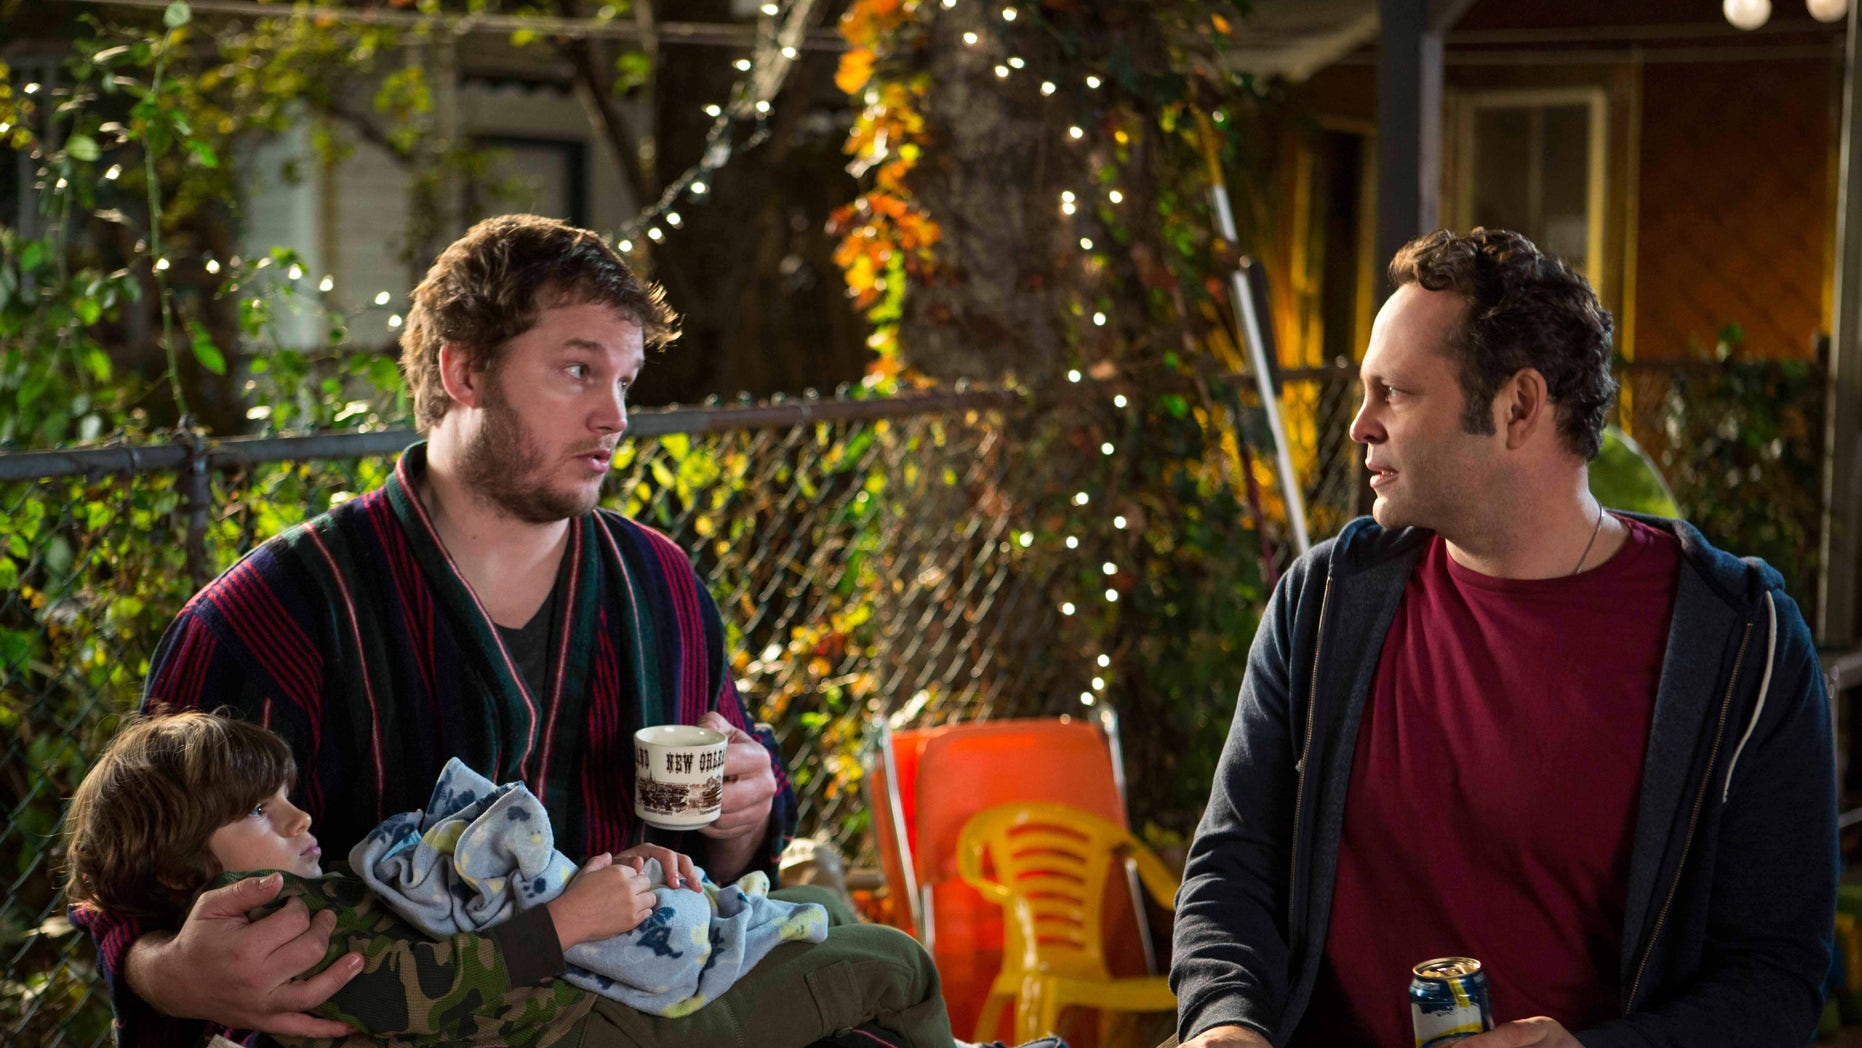 """This image released by Disney DreamWorks II Distribution Co. shows Chris Pratt, left, and Vince Vaughn in a scene from """"Delivery Man"""".  (AP Photo/Disney-DreamWorks II Distribution Co., Jessica Miglio)"""